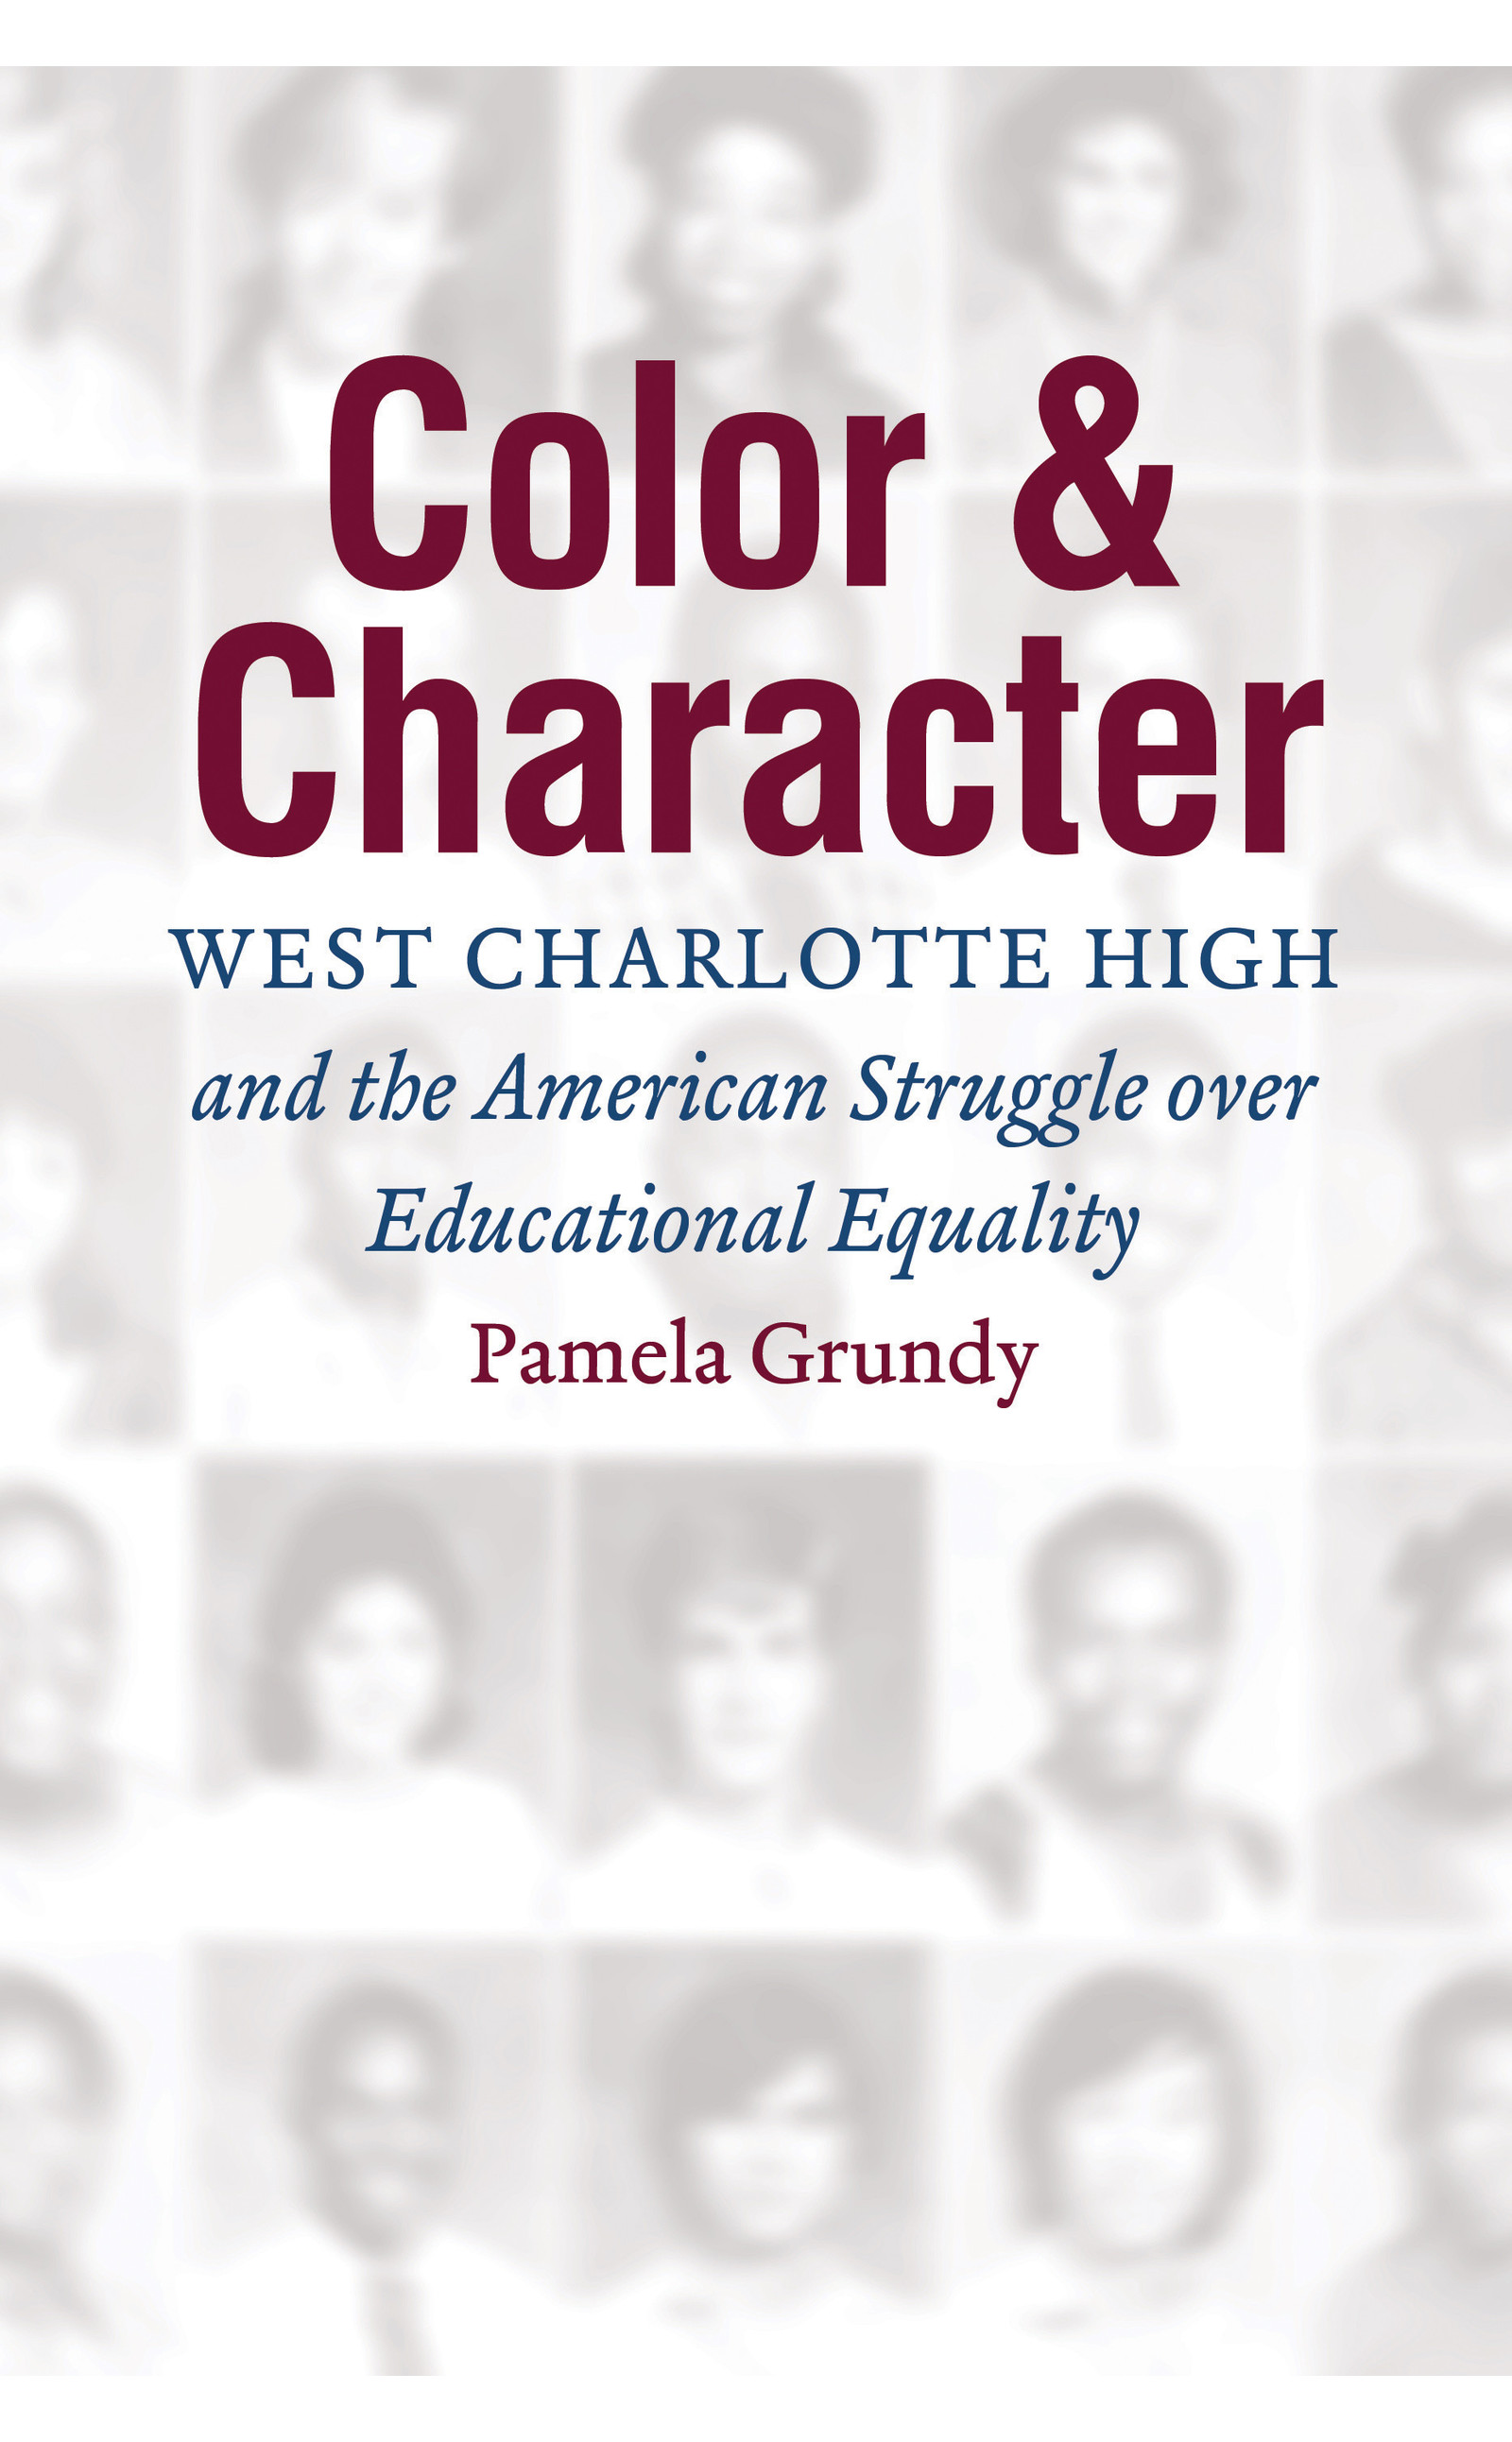 Color and Character by Pamela Grundy